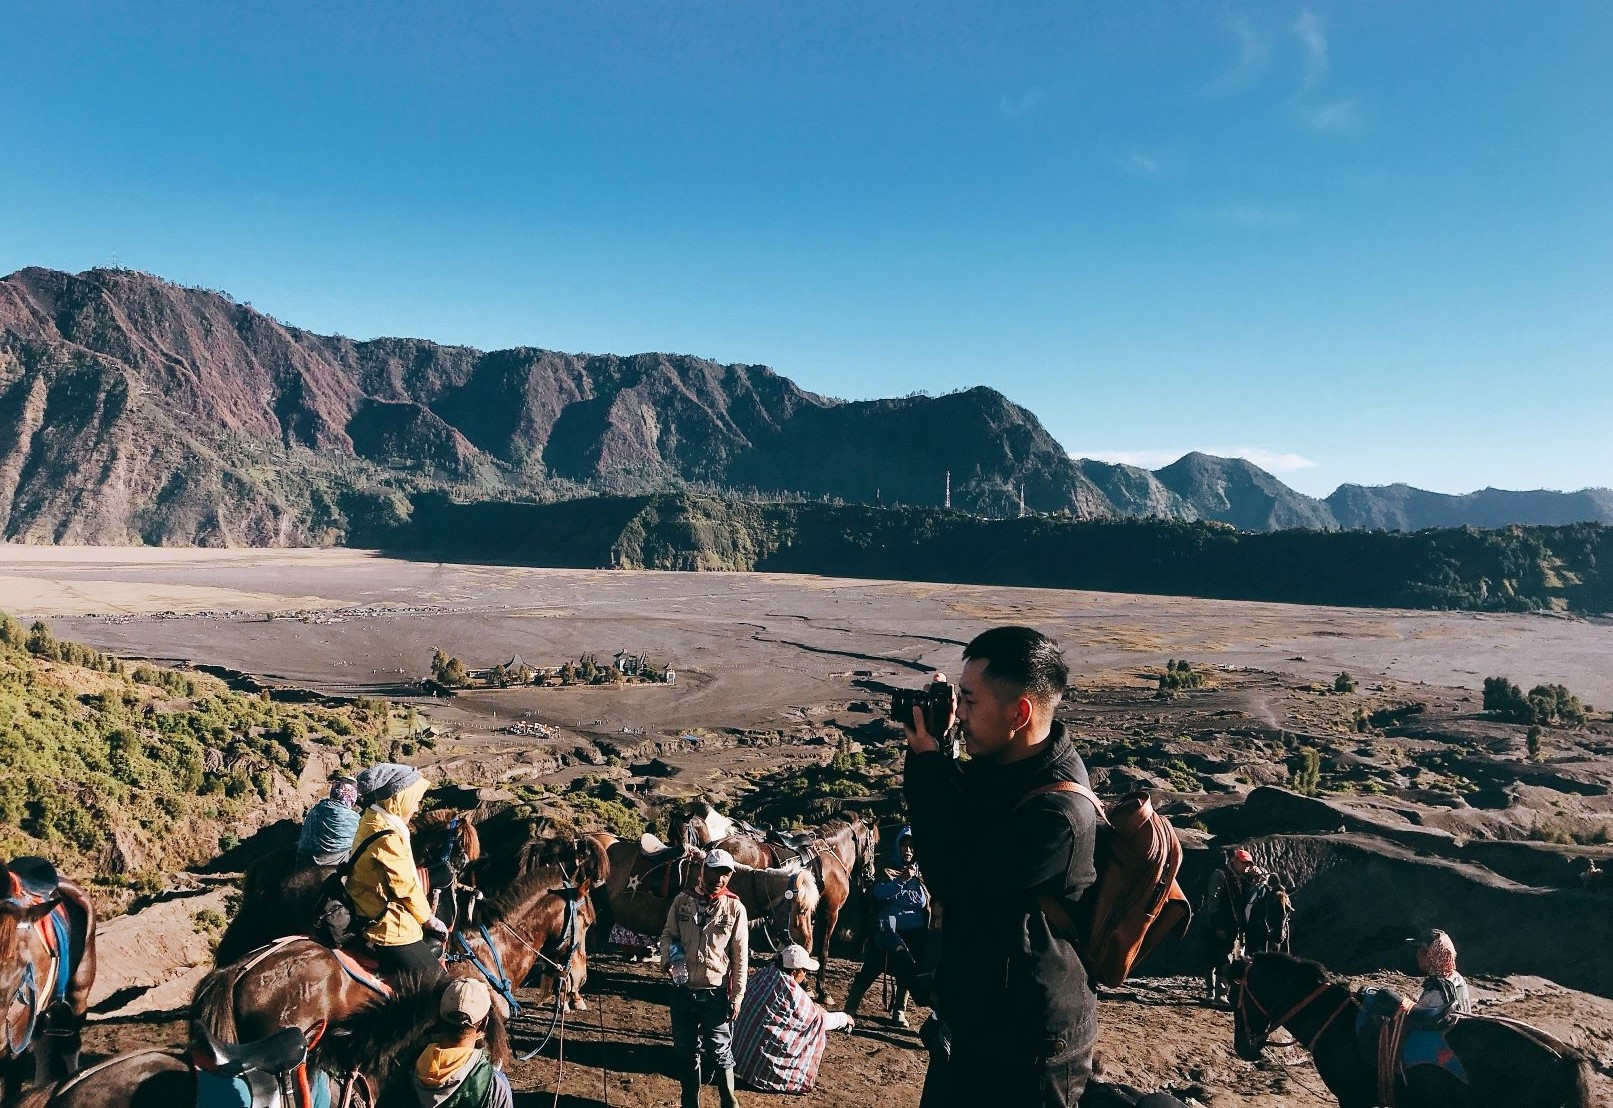 Den Indonesia, cham chan toi mieng nui lua Bromo hinh anh 13